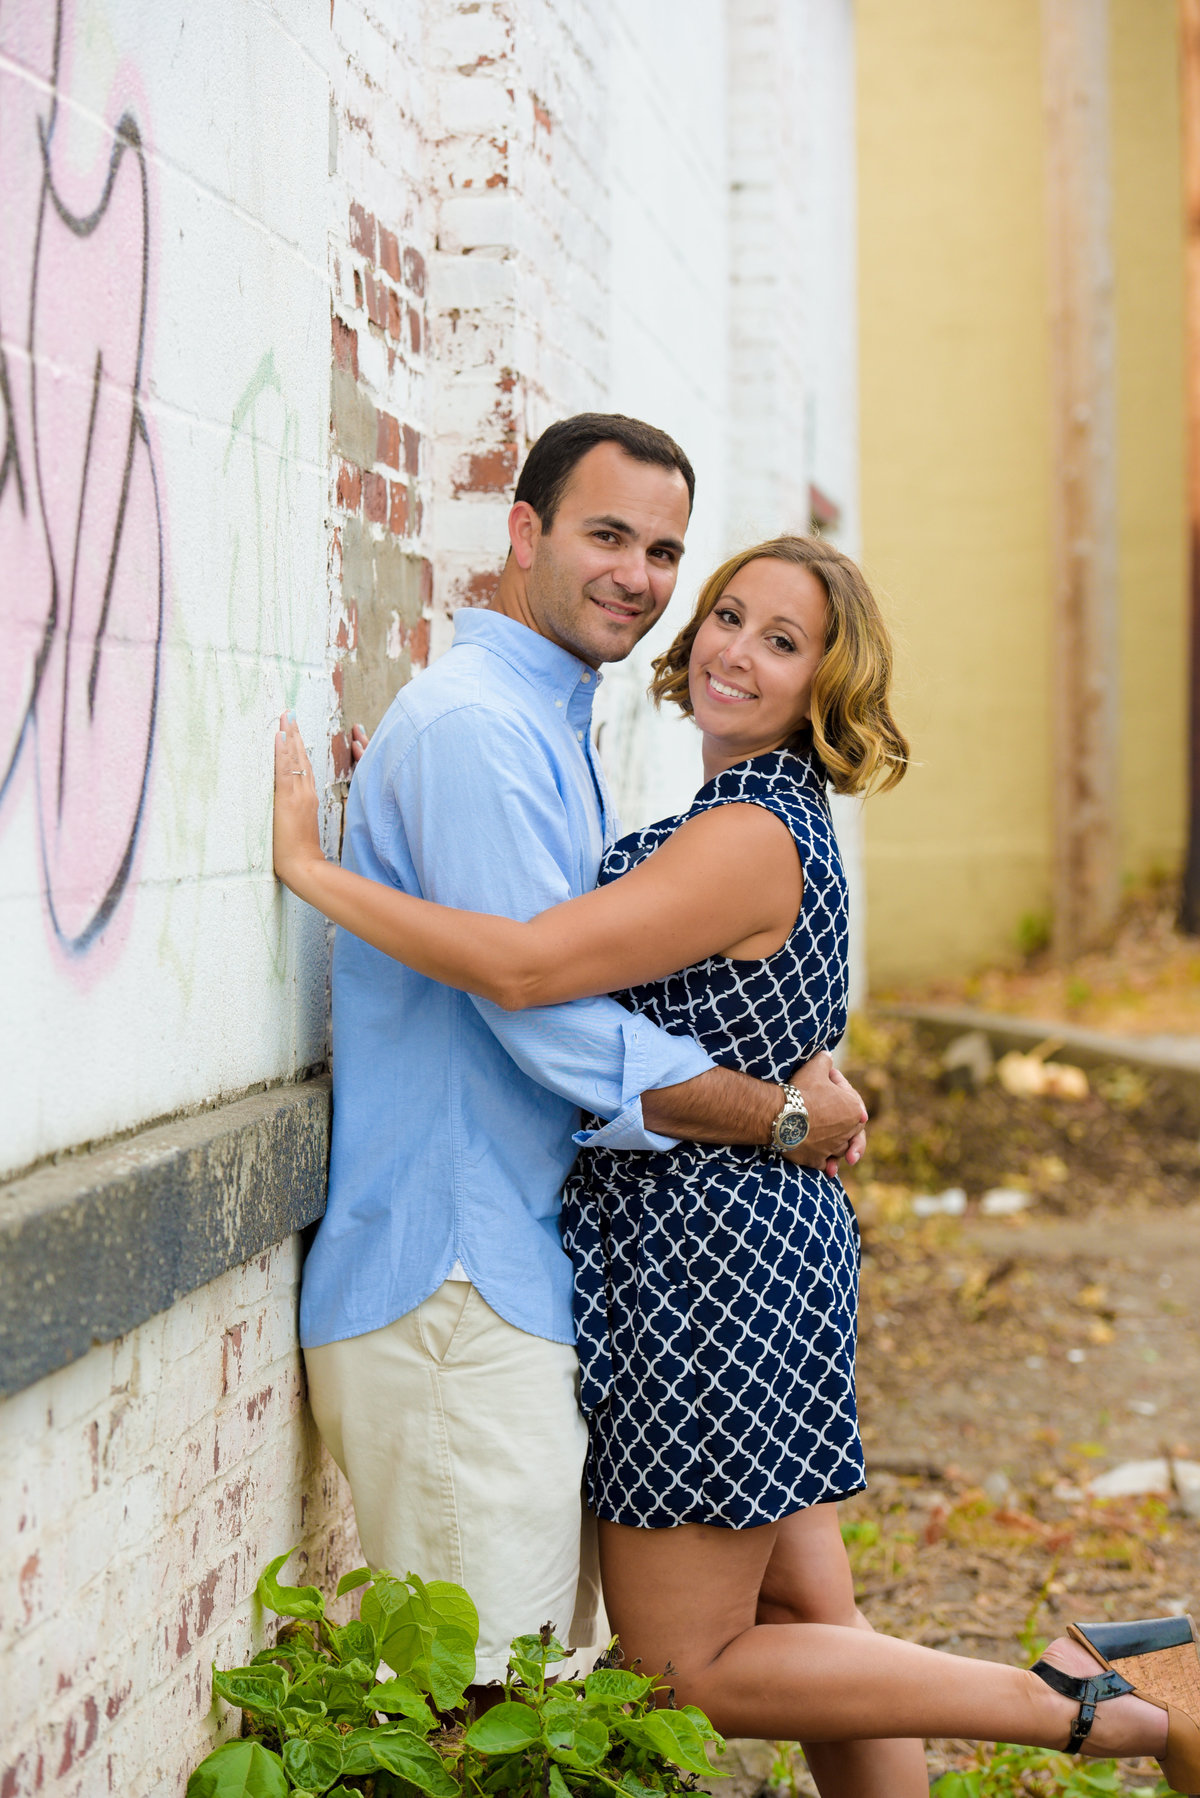 Downtown Saratoga Springs, Saratoga, NY, engagement session